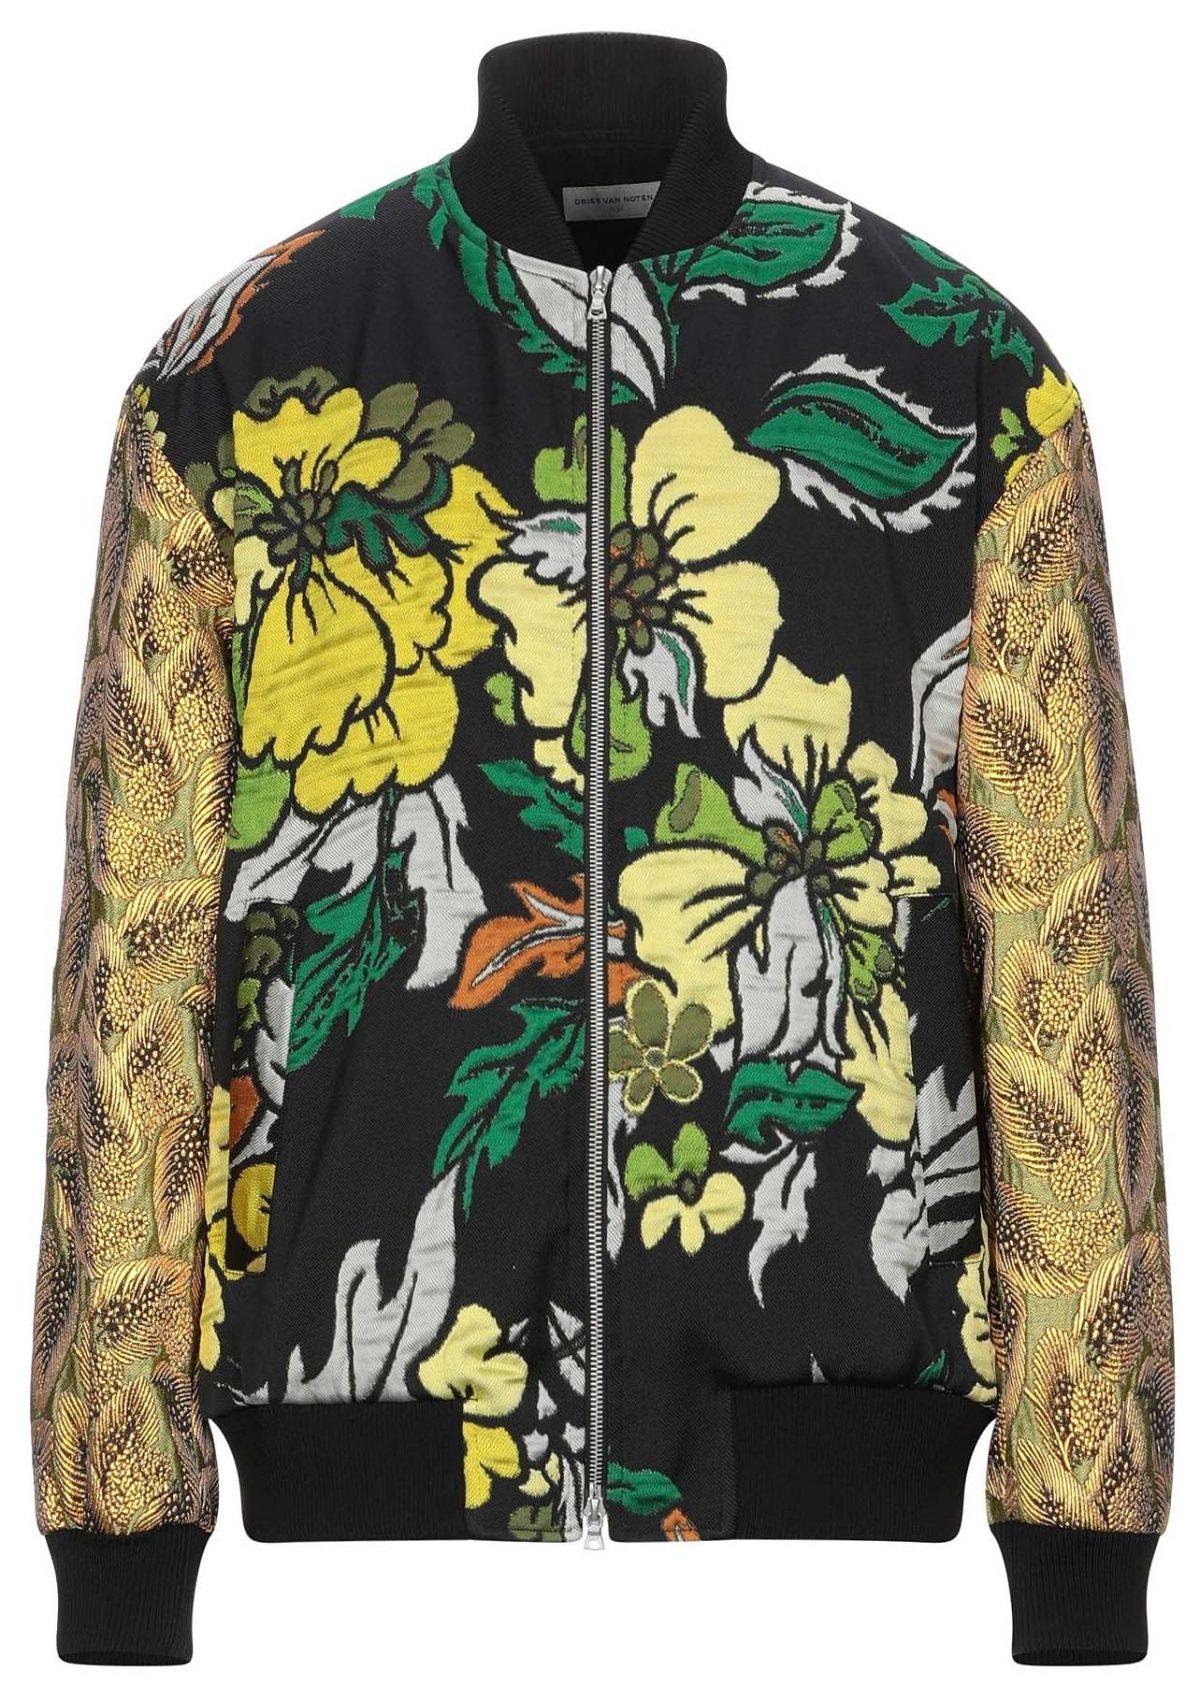 Dries Van Noten Floral Jacquard Weave Bomber Jacket